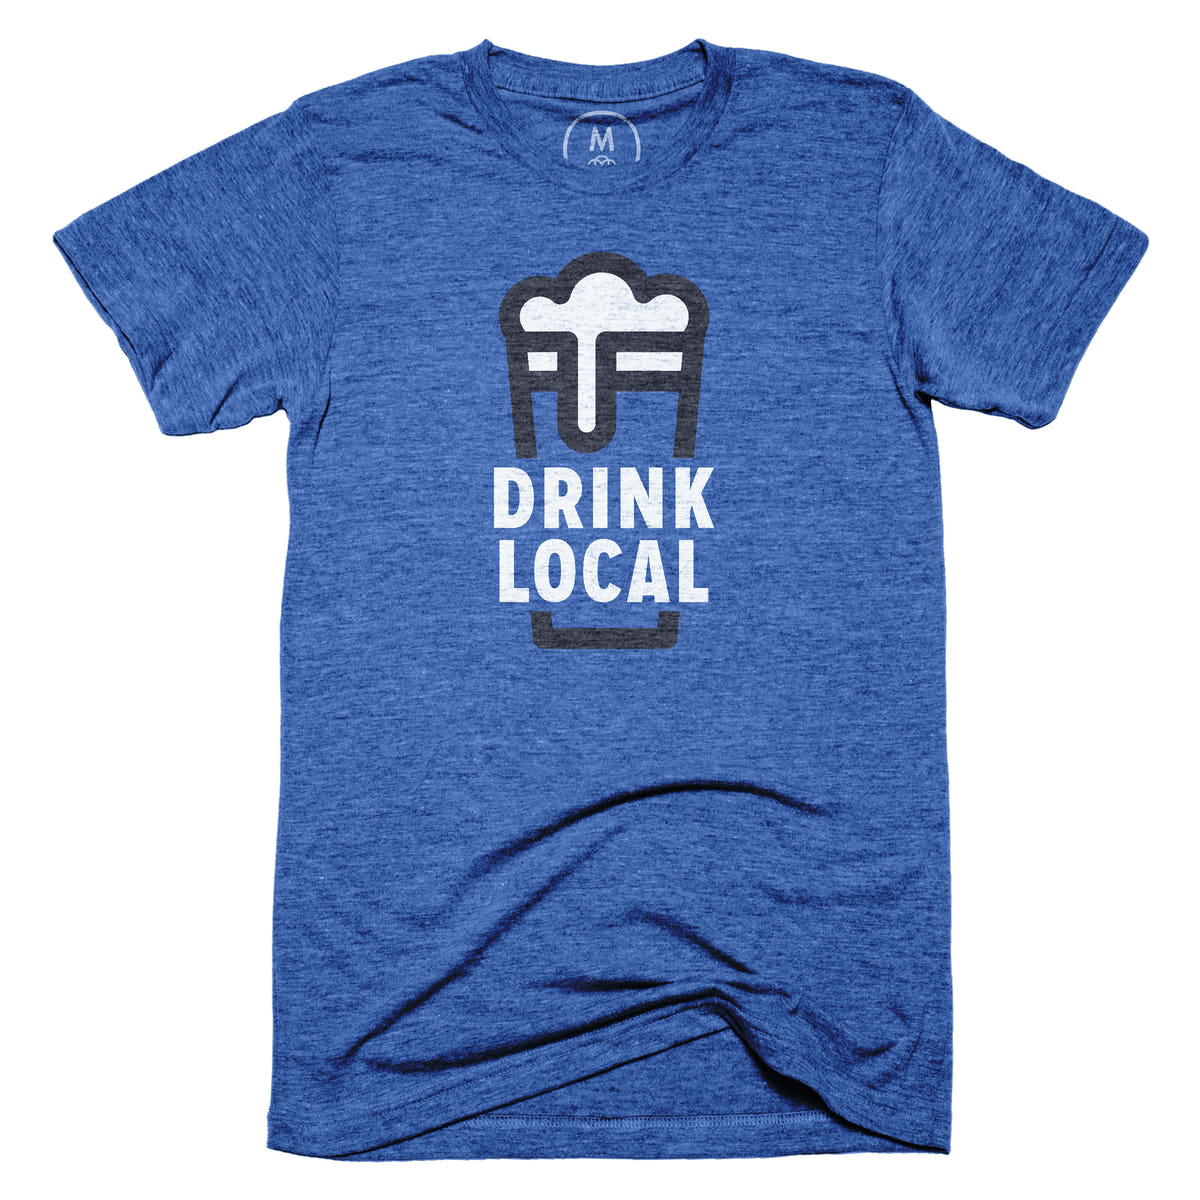 Drink local graphic tee by nick signet cotton bureau for Local t shirt print shops